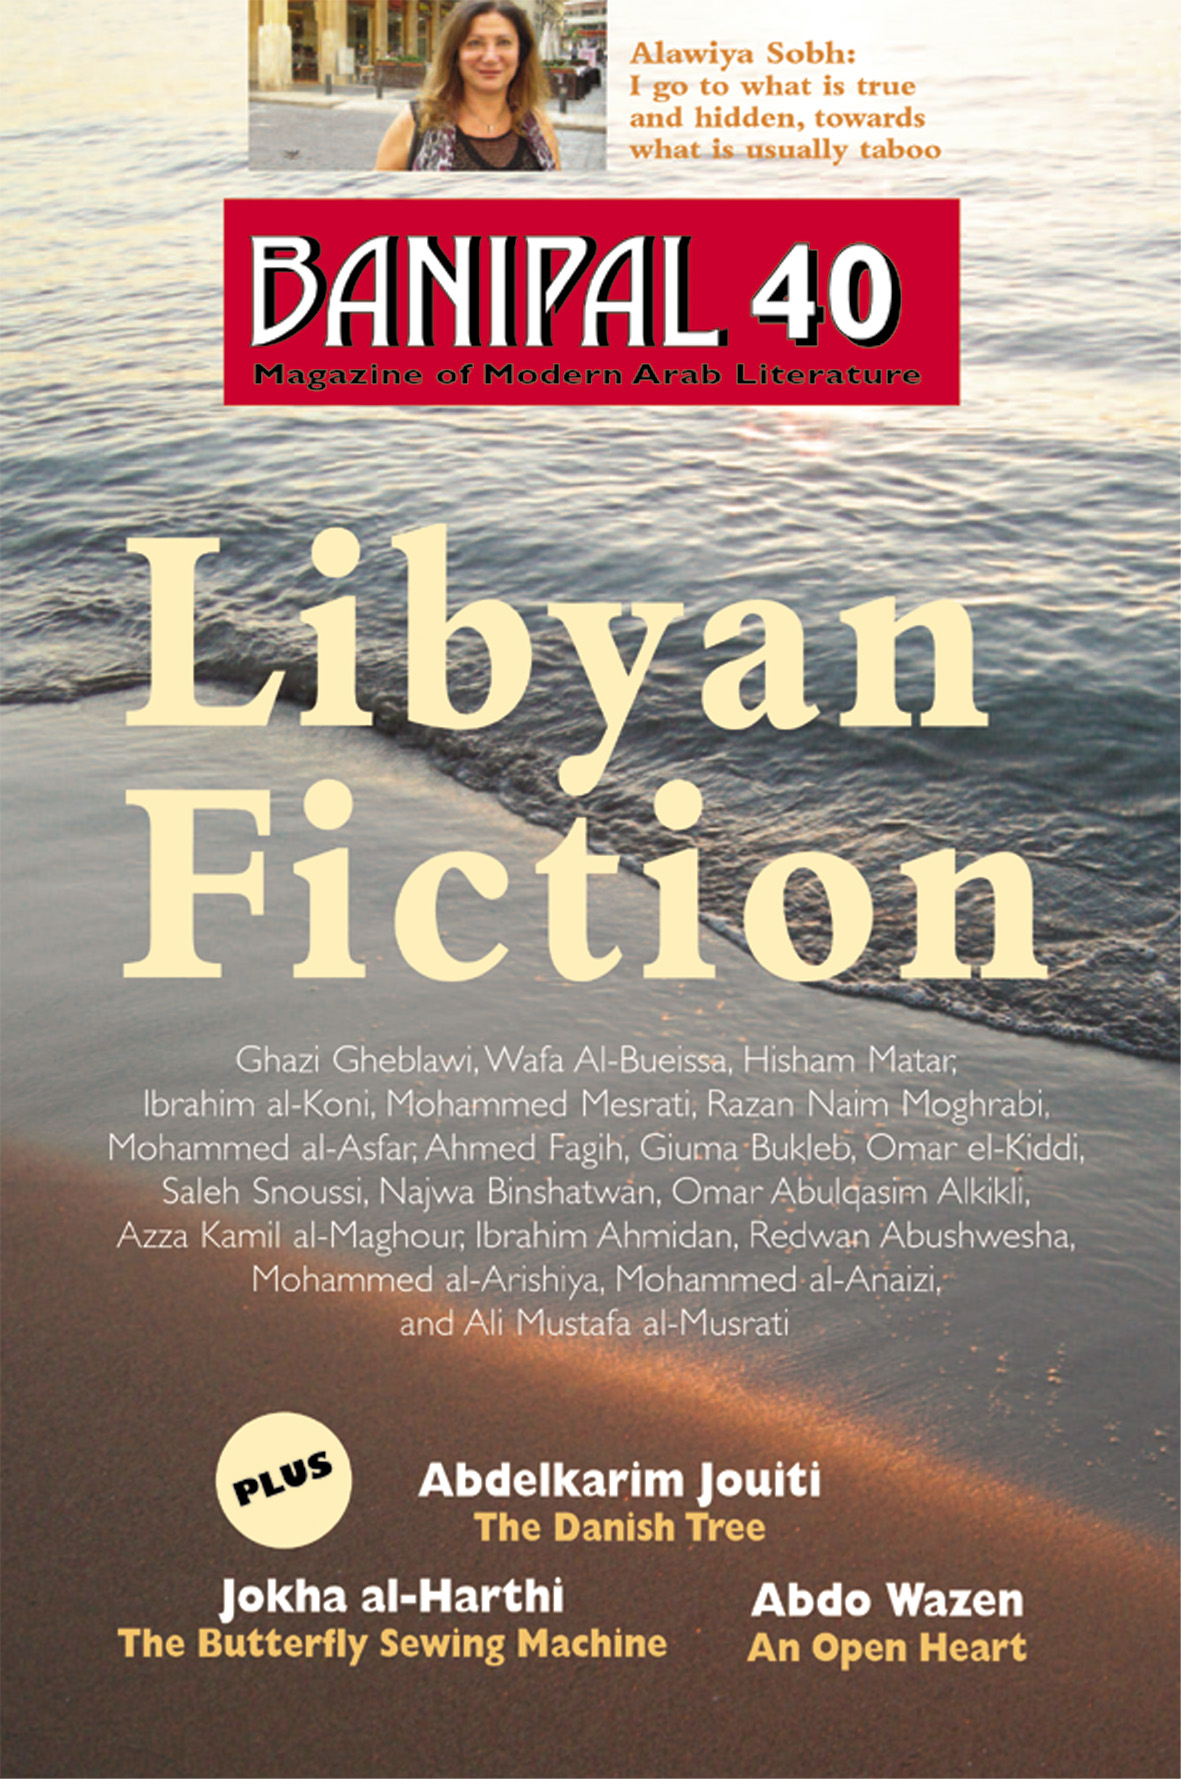 Front cover of Banipal 40 – Libyan Fiction